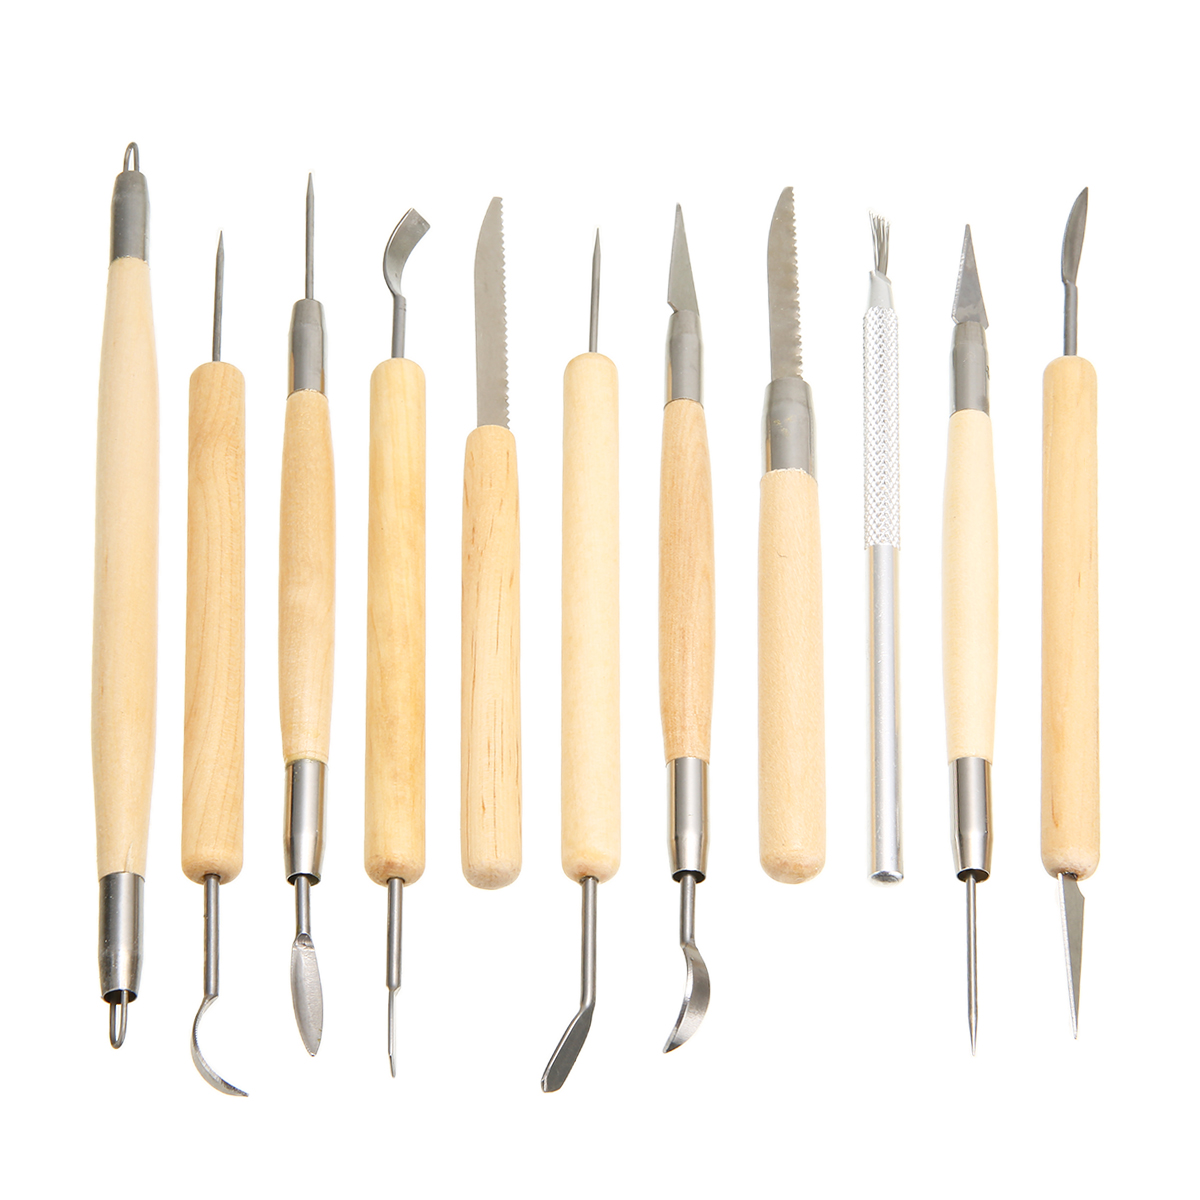 30pcs/set Carving Kit Pottery Clay Sculpture Modelling Wax Carving Pottery Ceramic Tools DIY Craft